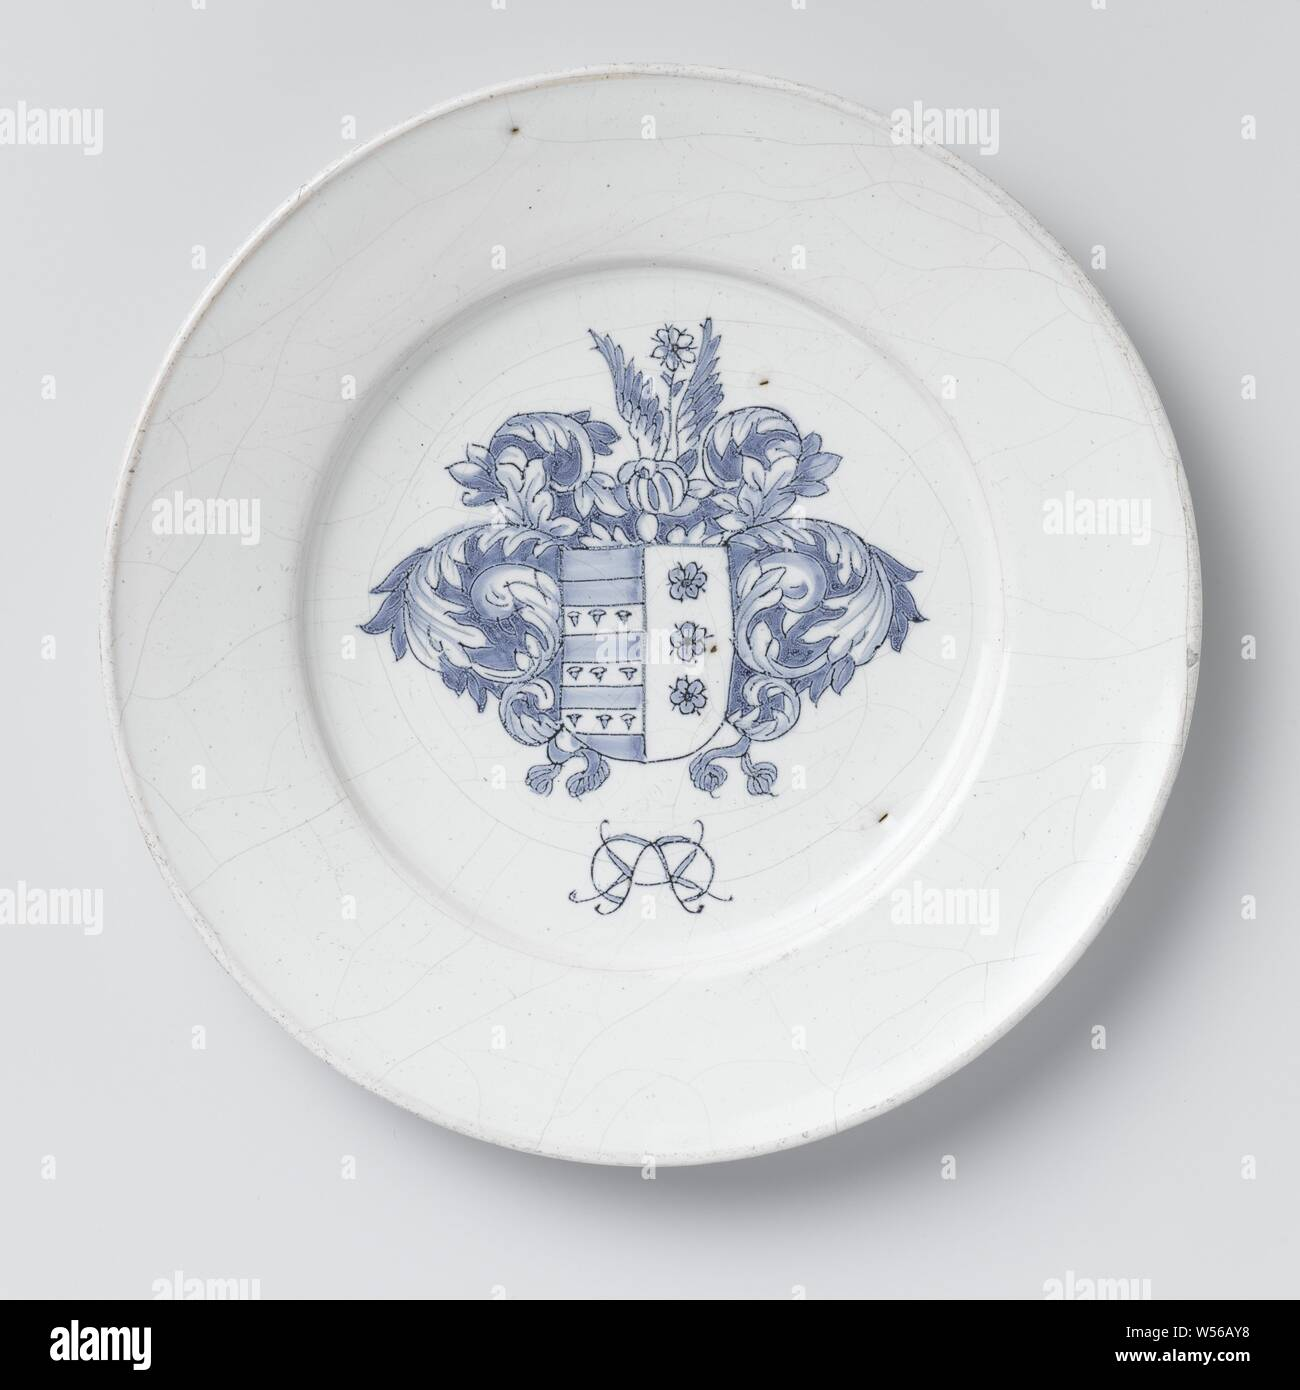 https www alamy com plate of faience with coat of arms plate of faience with an unknown weapon with helmet sign and unknown mirror monogram anonymous delft c 1660 c 1690 d 255 cm image261369116 html